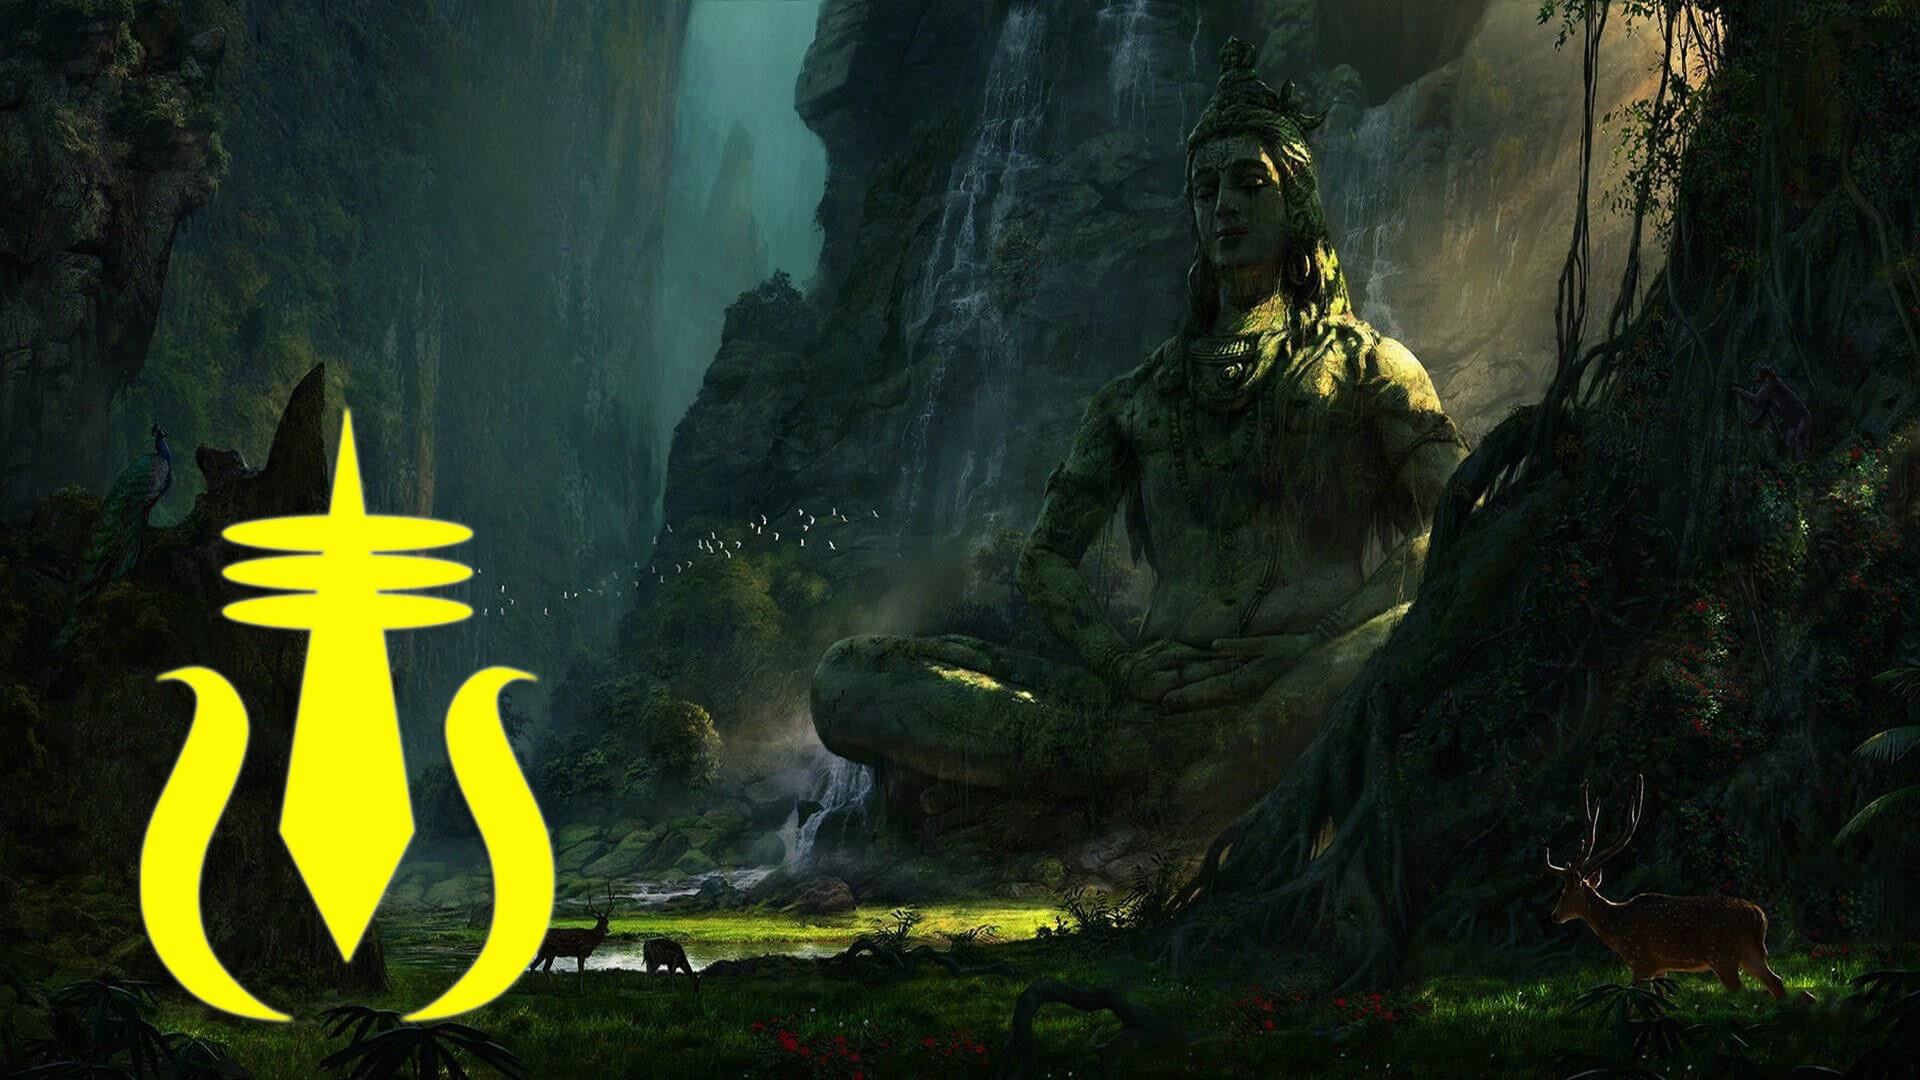 Lord Shiva Youga Wallpaper Hd Wallpapers For Pc Free